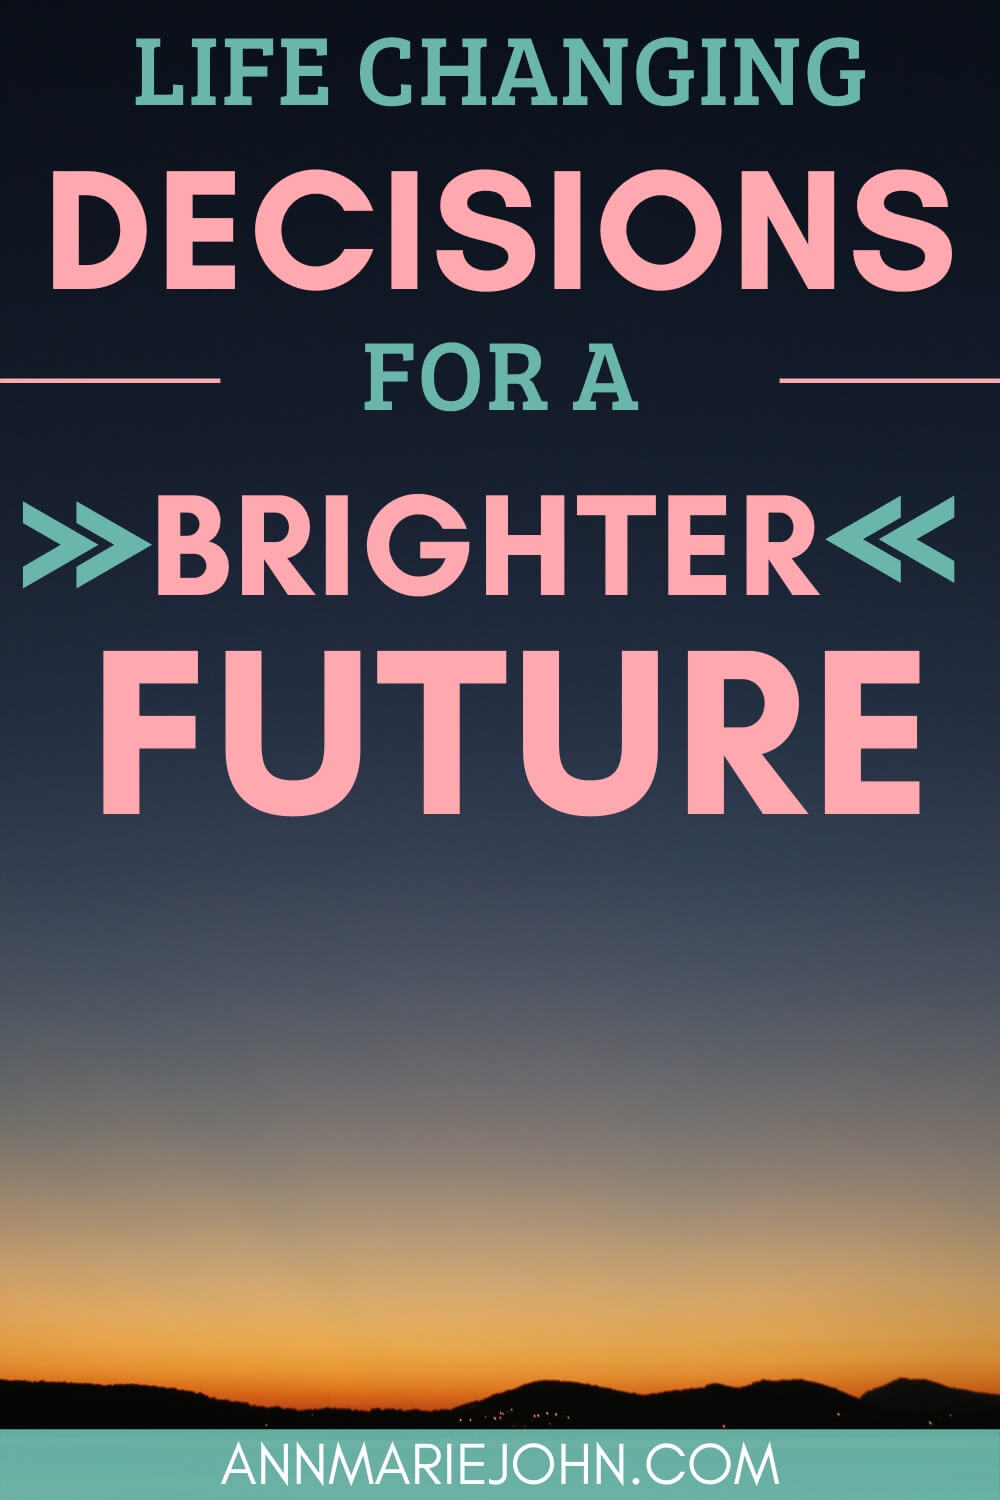 Life Changing Decisions To Think About For A Brighter Future